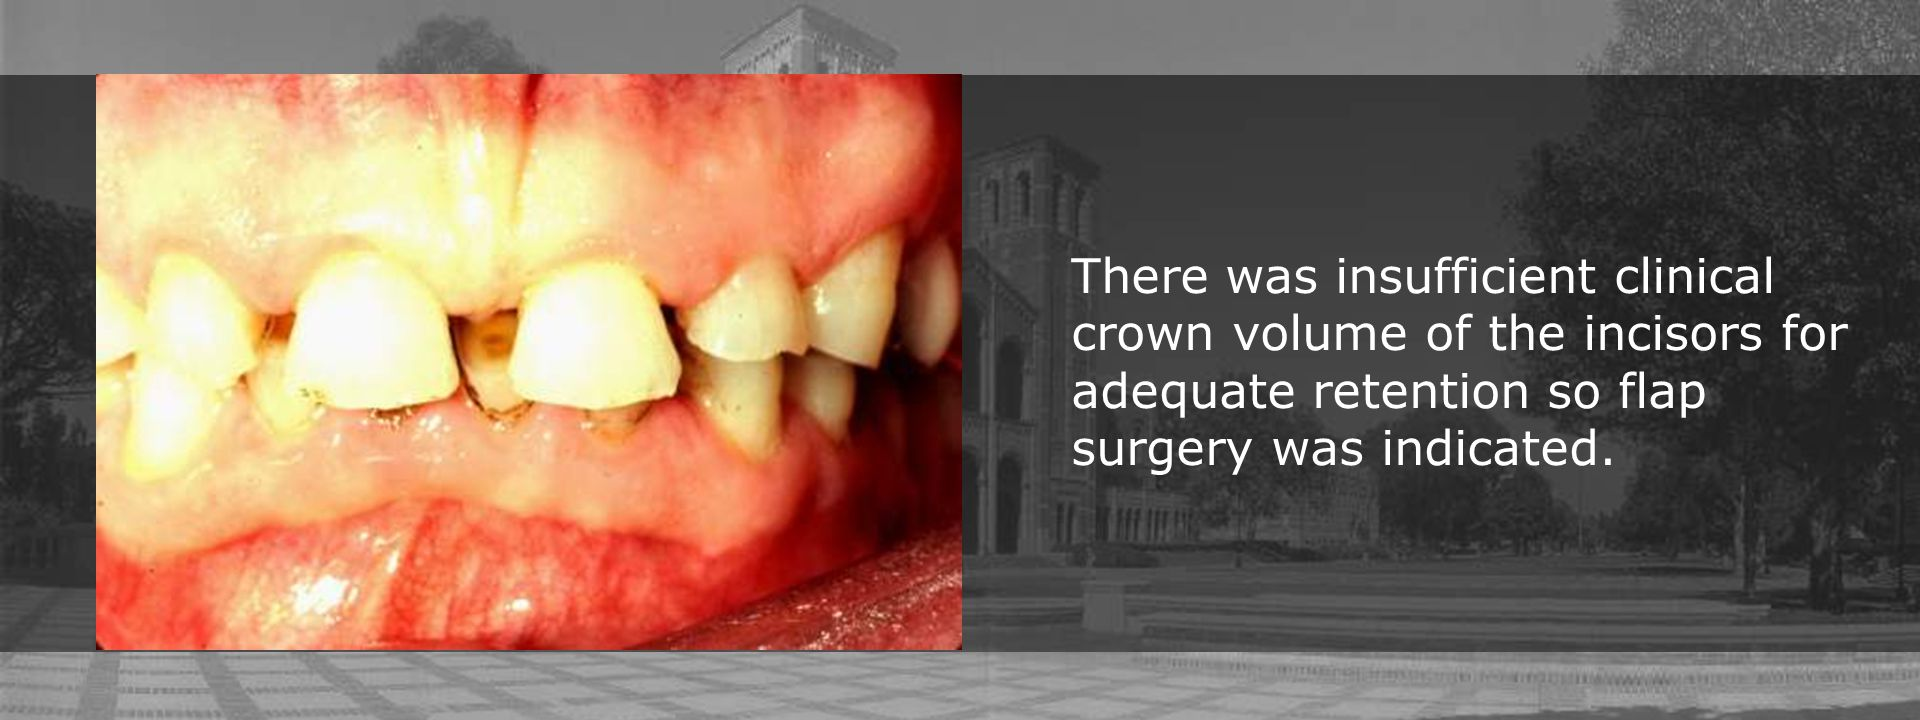 There was insufficient clinical crown volume of the incisors for adequate retention so flap surgery was indicated.